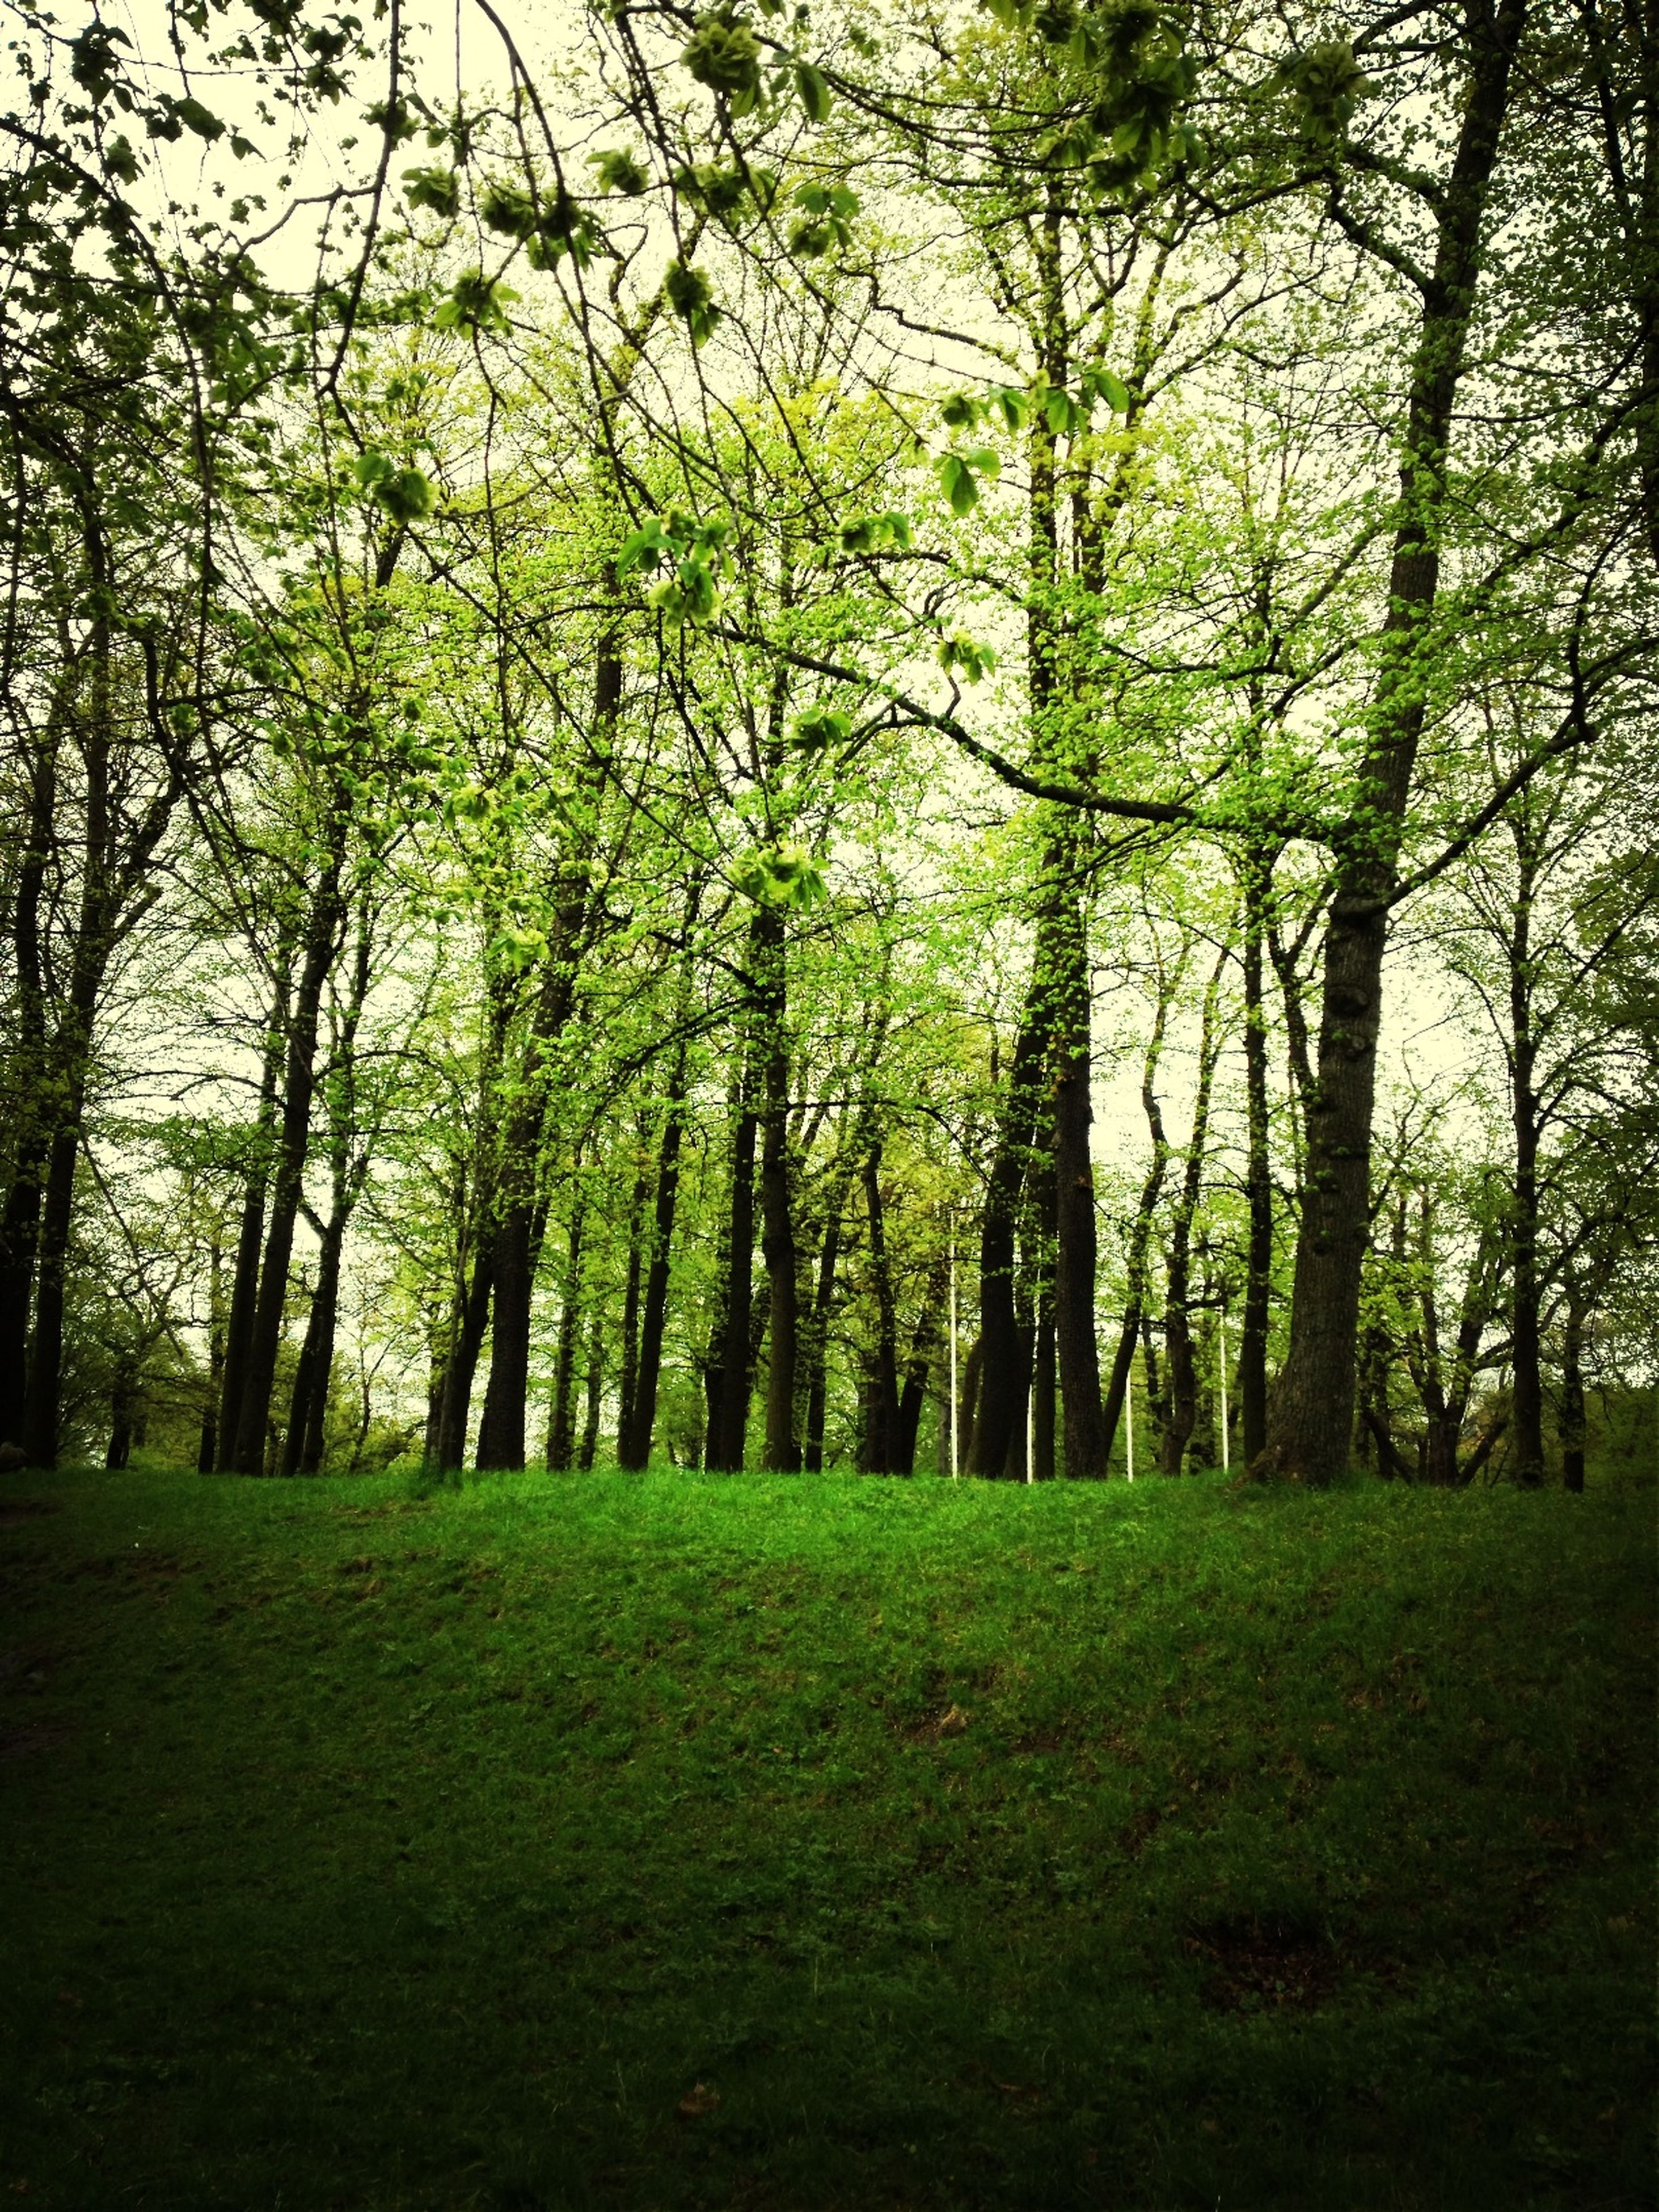 tree, tranquility, tree trunk, grass, growth, green color, tranquil scene, branch, nature, beauty in nature, scenics, forest, landscape, day, sunlight, field, outdoors, woodland, grassy, non-urban scene